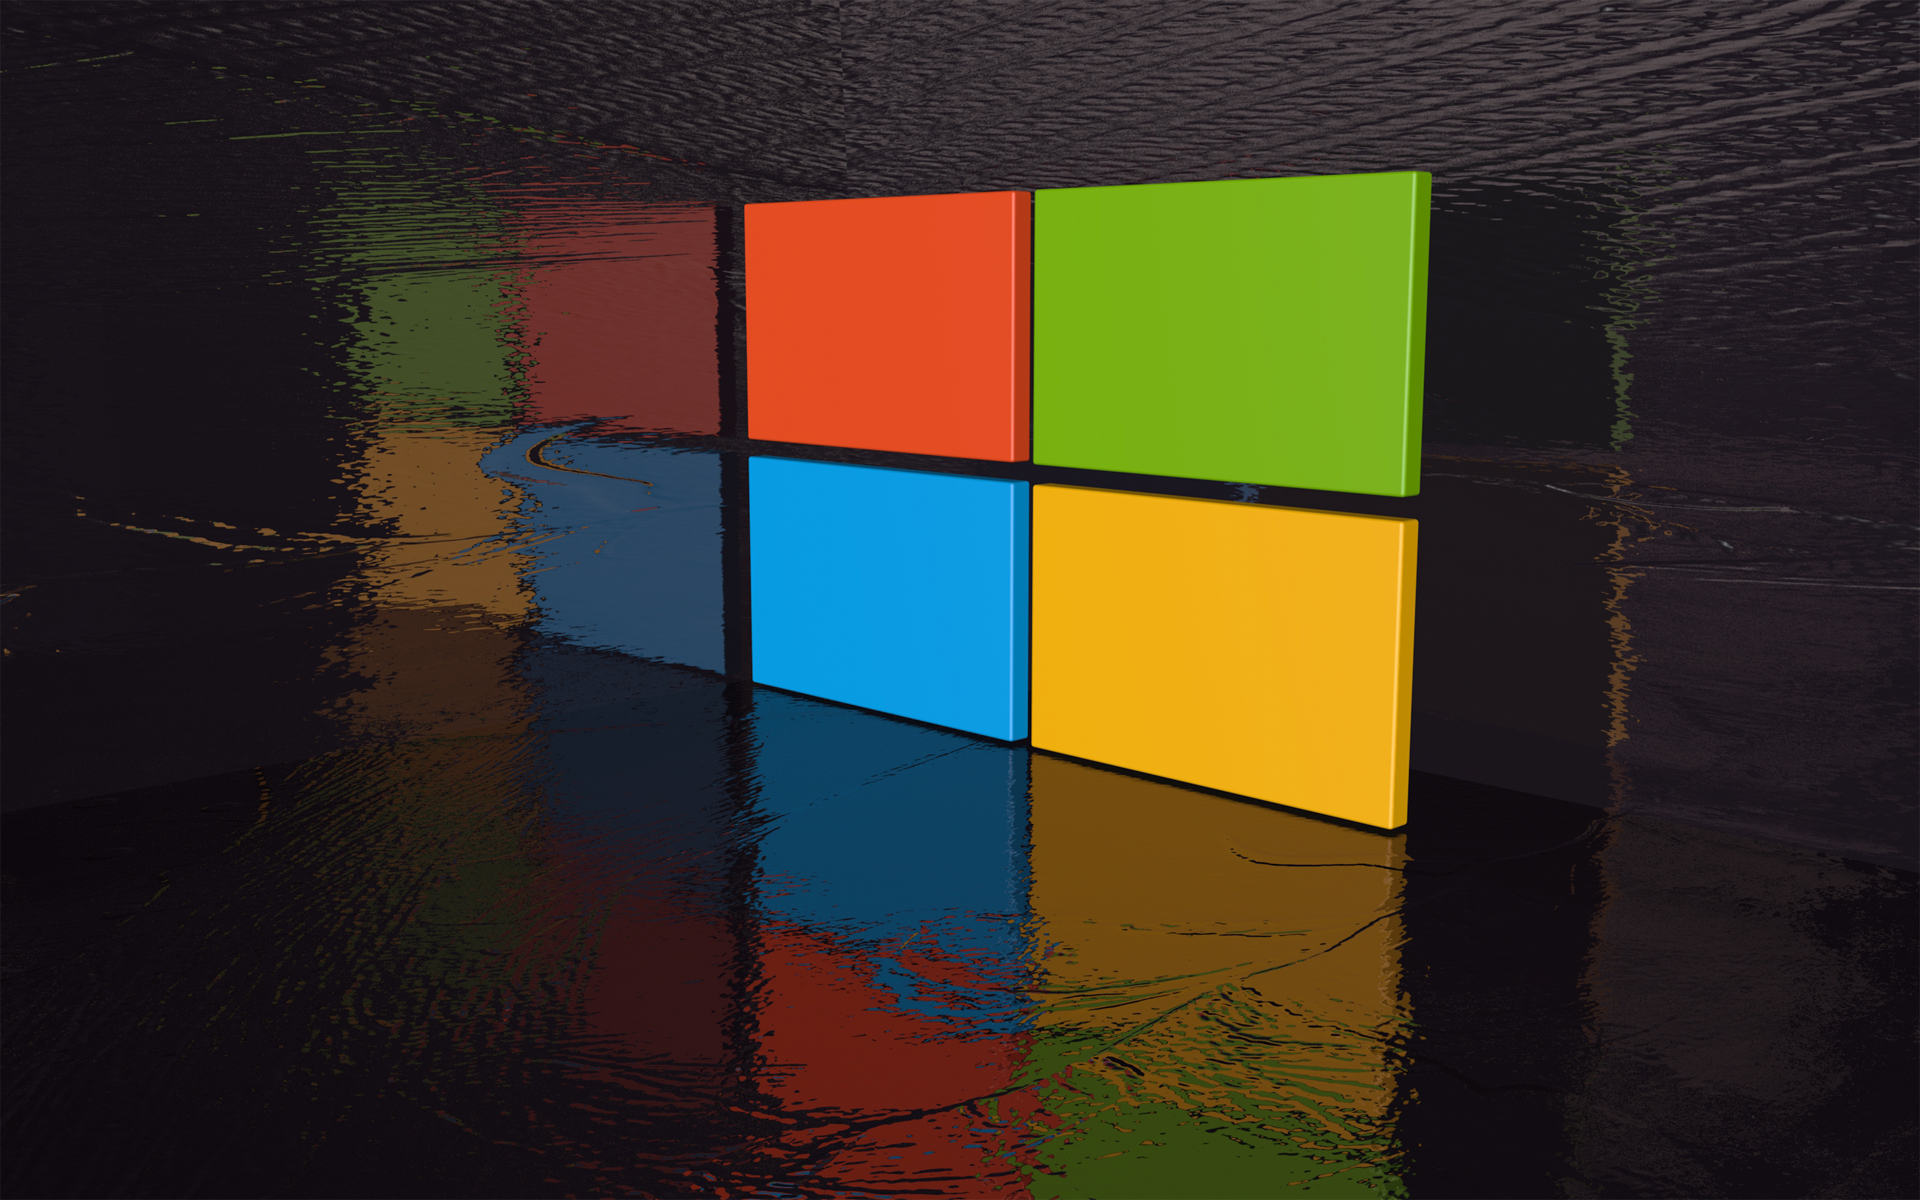 Colorful 3D Windows 8 Wallpaper HD For Your PC Computer